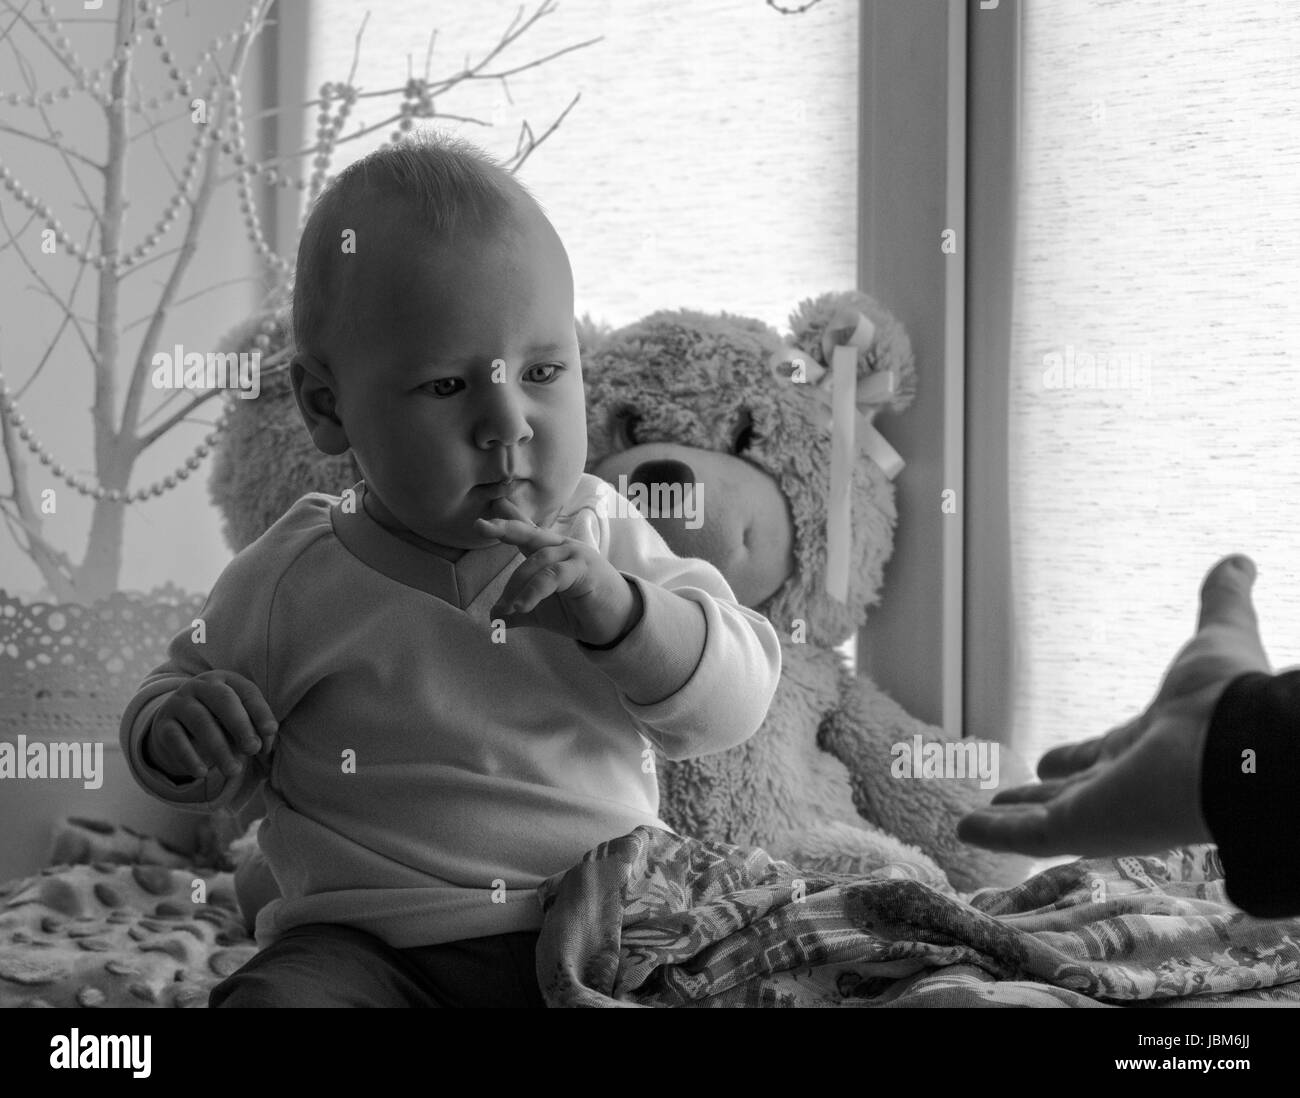 Portrait of baby boy. - Stock Image